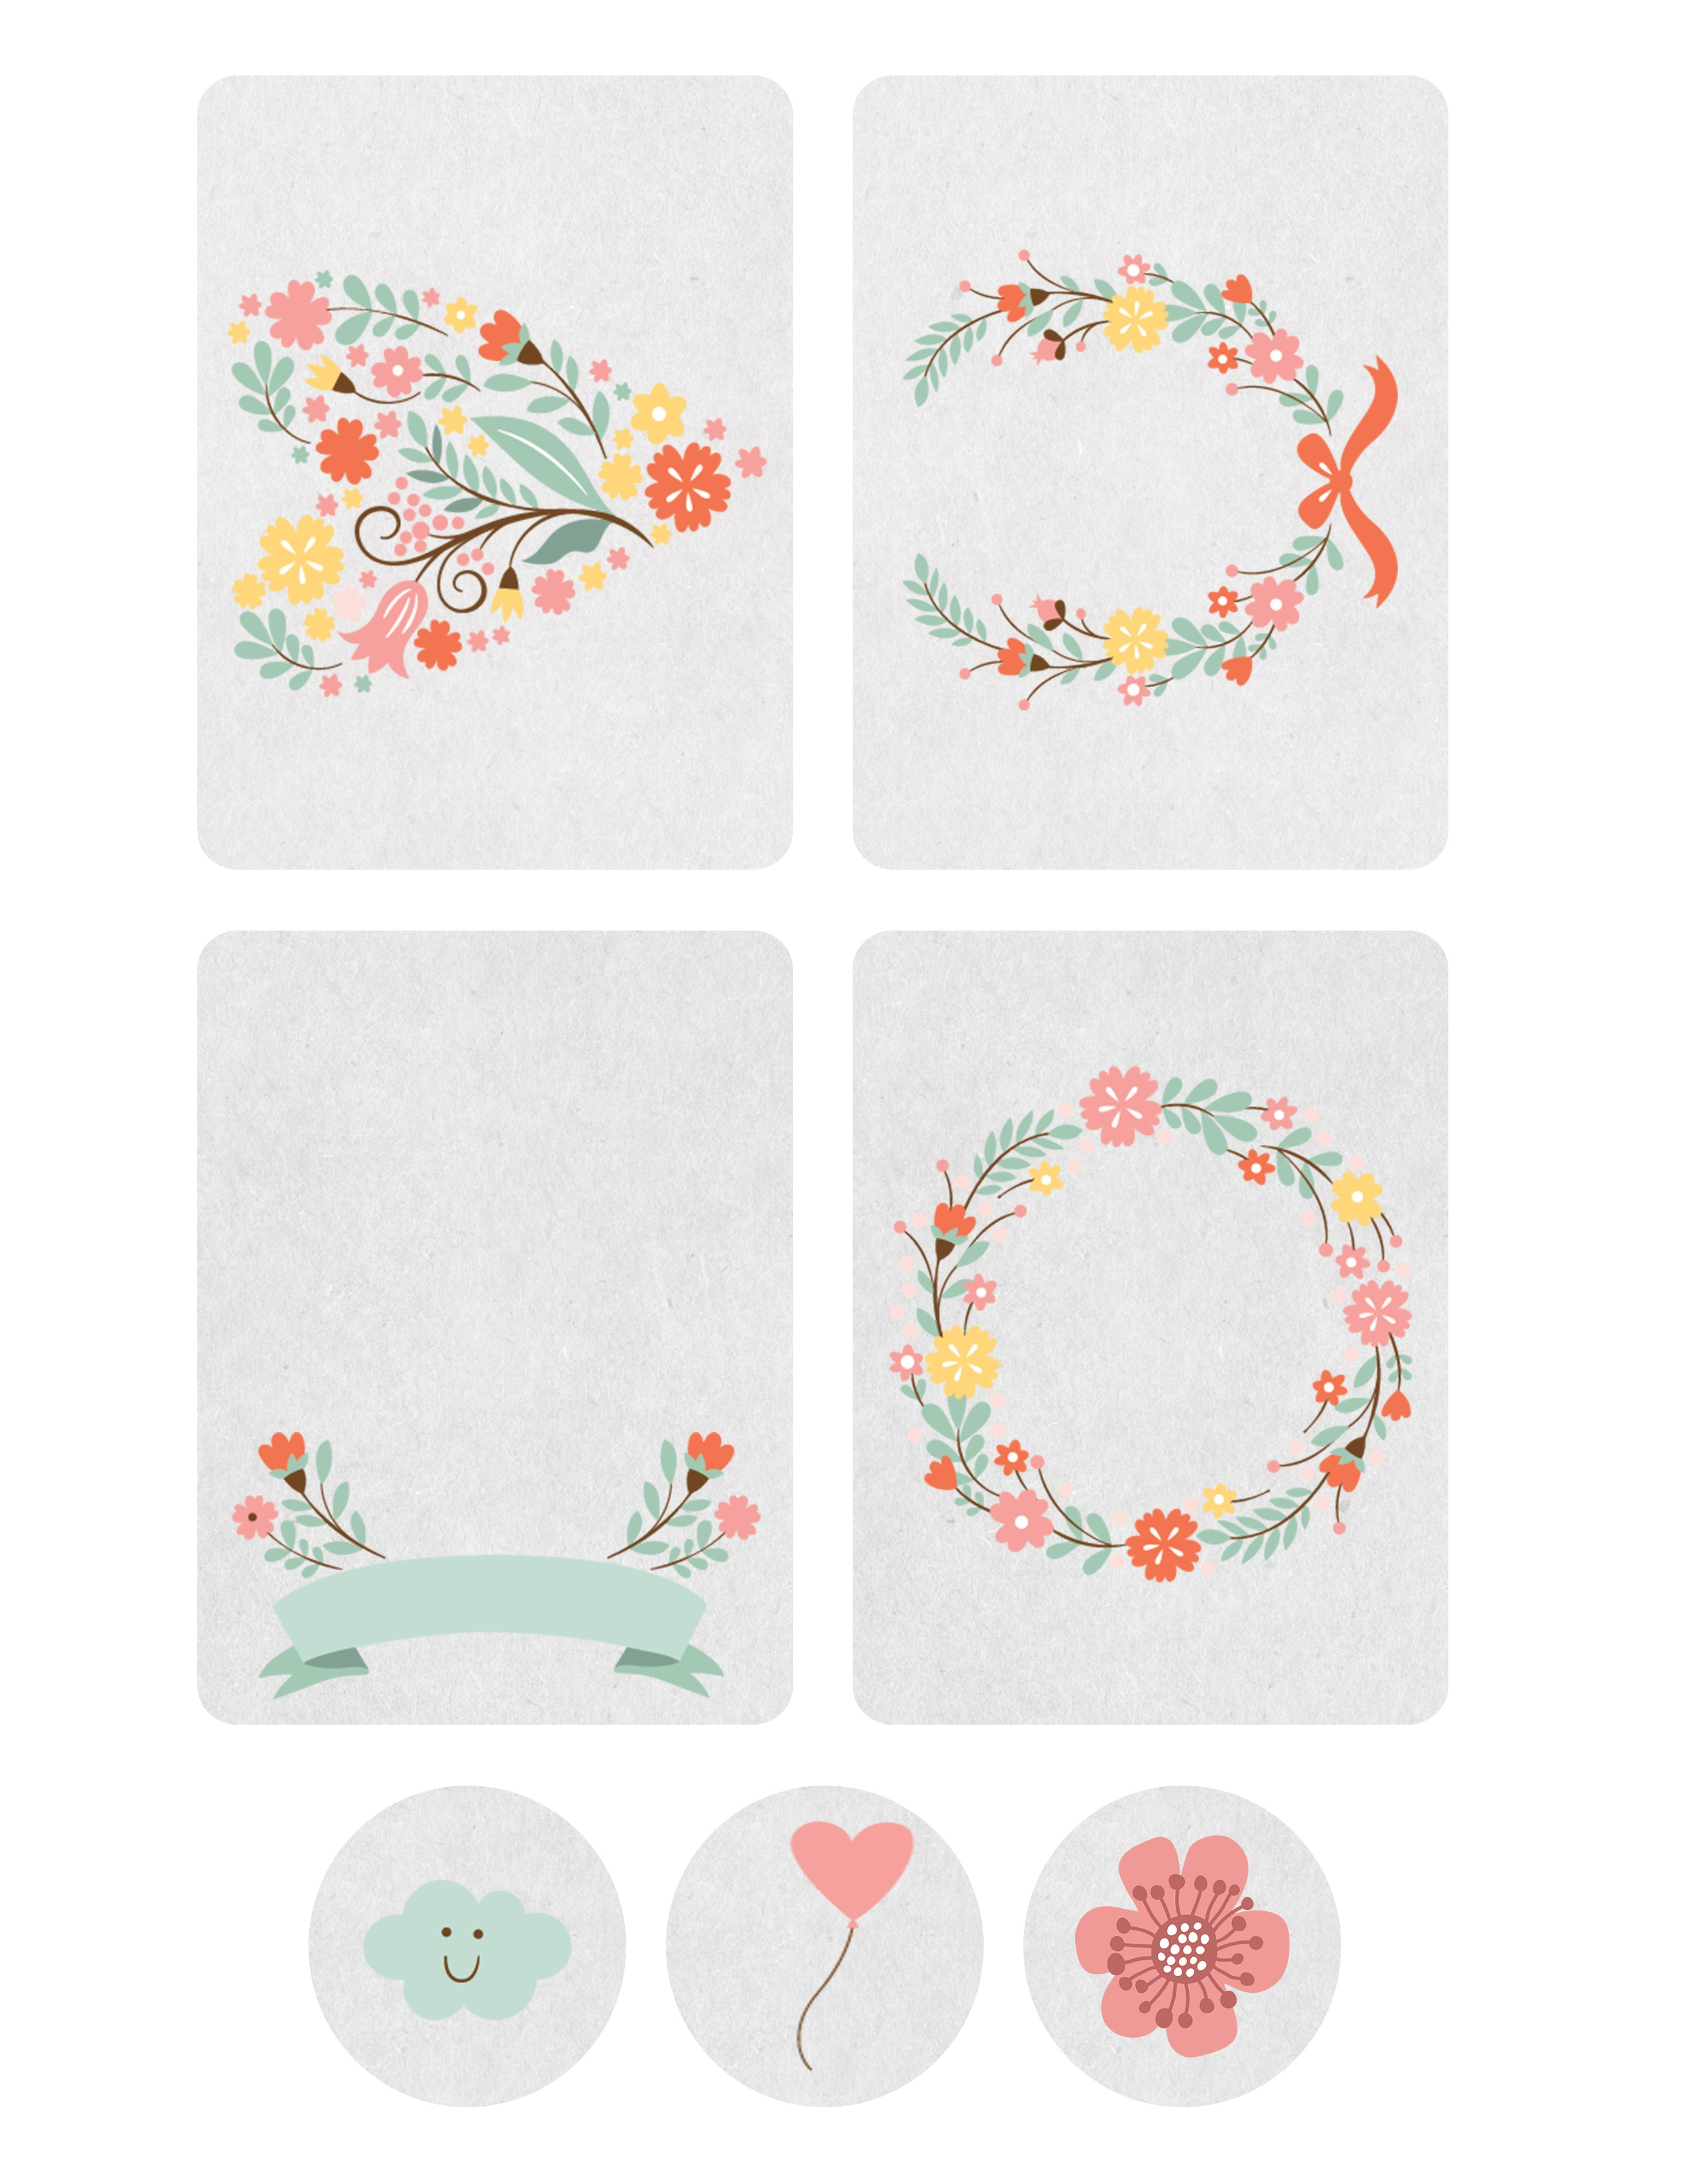 Free Printable Journaling Cards And Some Little Known Facts - The - Free Printable Picture Cards